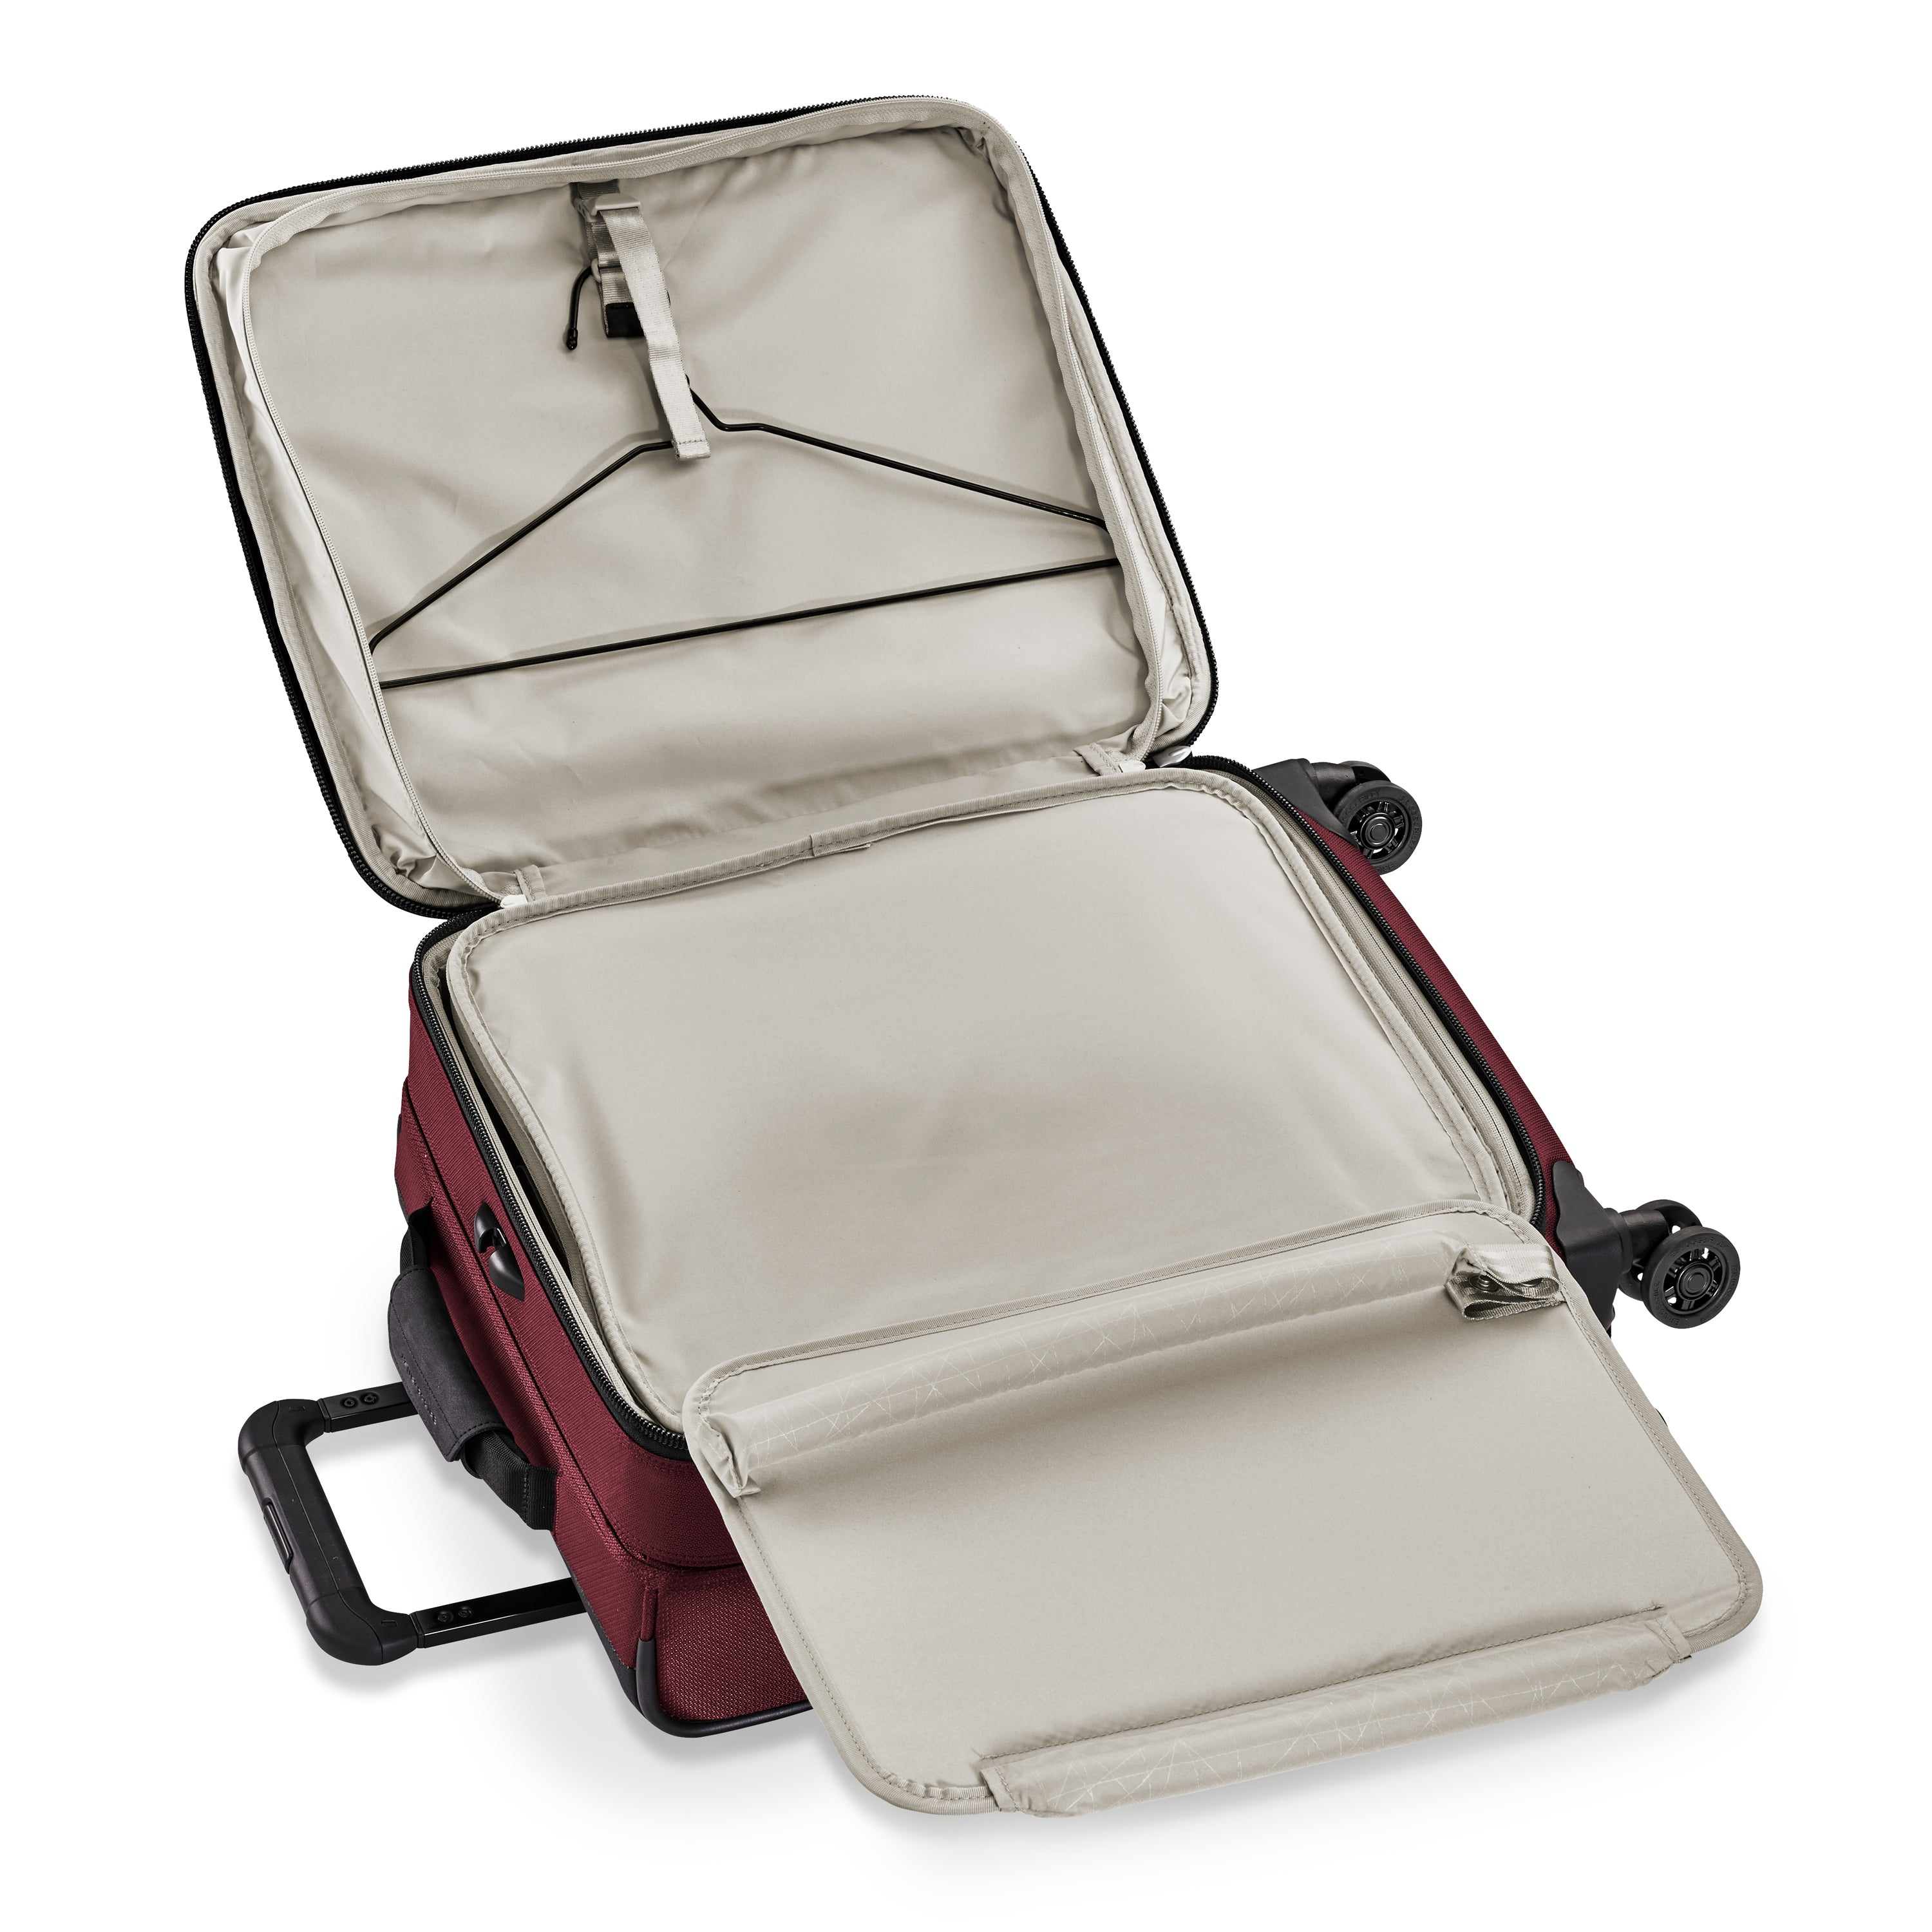 Briggs & Riley Transcend Wide Carry-On Expandable Spinner - Merlot | MEGO